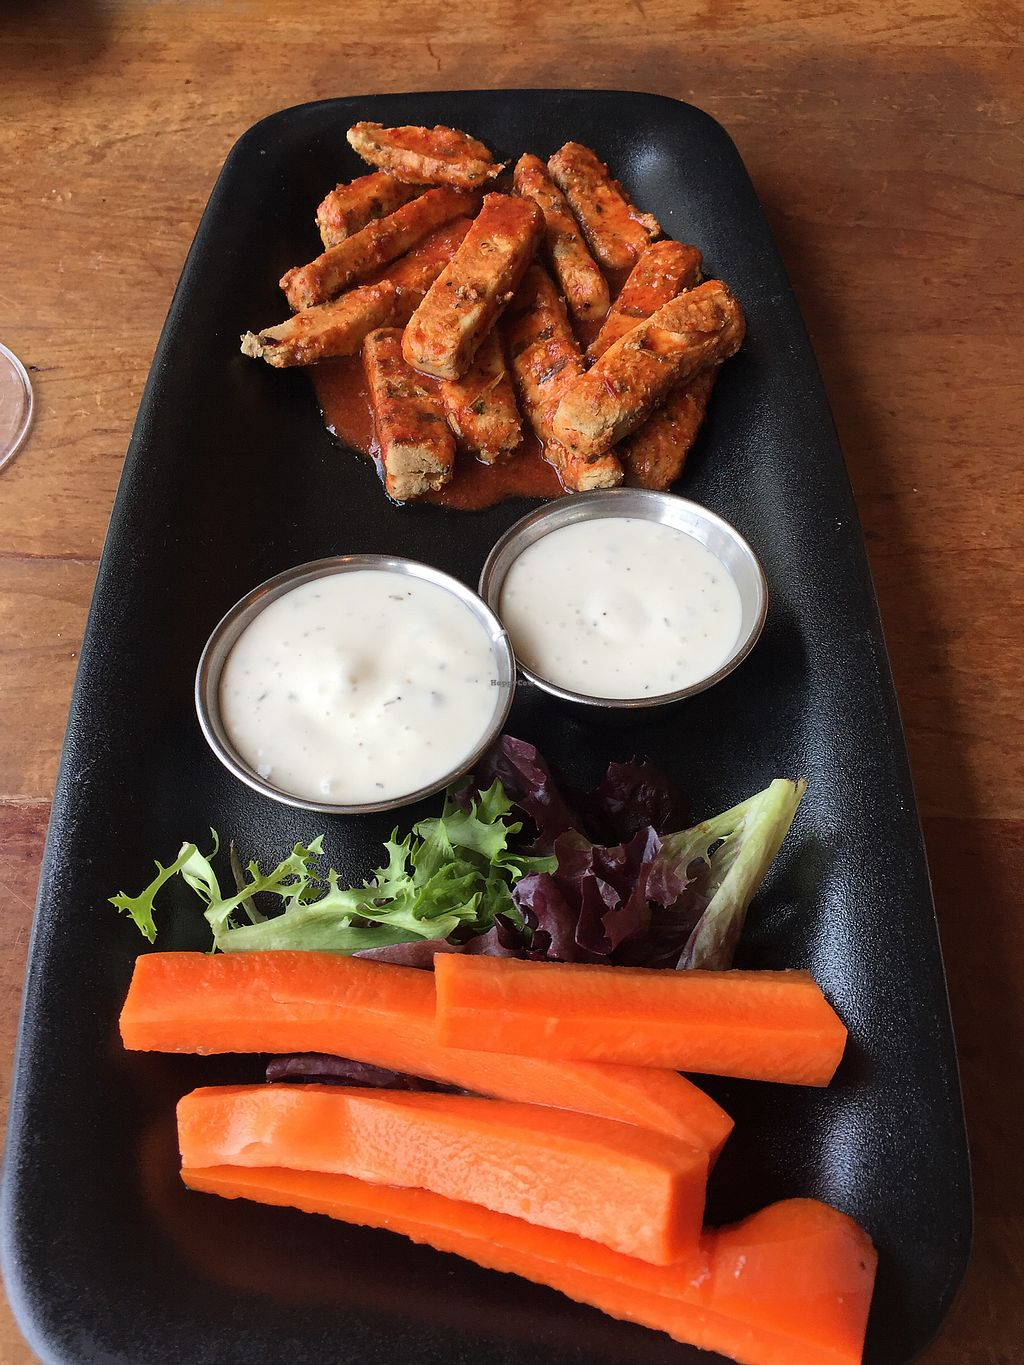 """Photo of Picazzo's Organic Italian Kitchen  by <a href=""""/members/profile/NickiPT"""">NickiPT</a> <br/>Beyond Meat chicken strips with buffalo sauce and vegan blue cheese! <br/> March 9, 2018  - <a href='/contact/abuse/image/32230/368486'>Report</a>"""